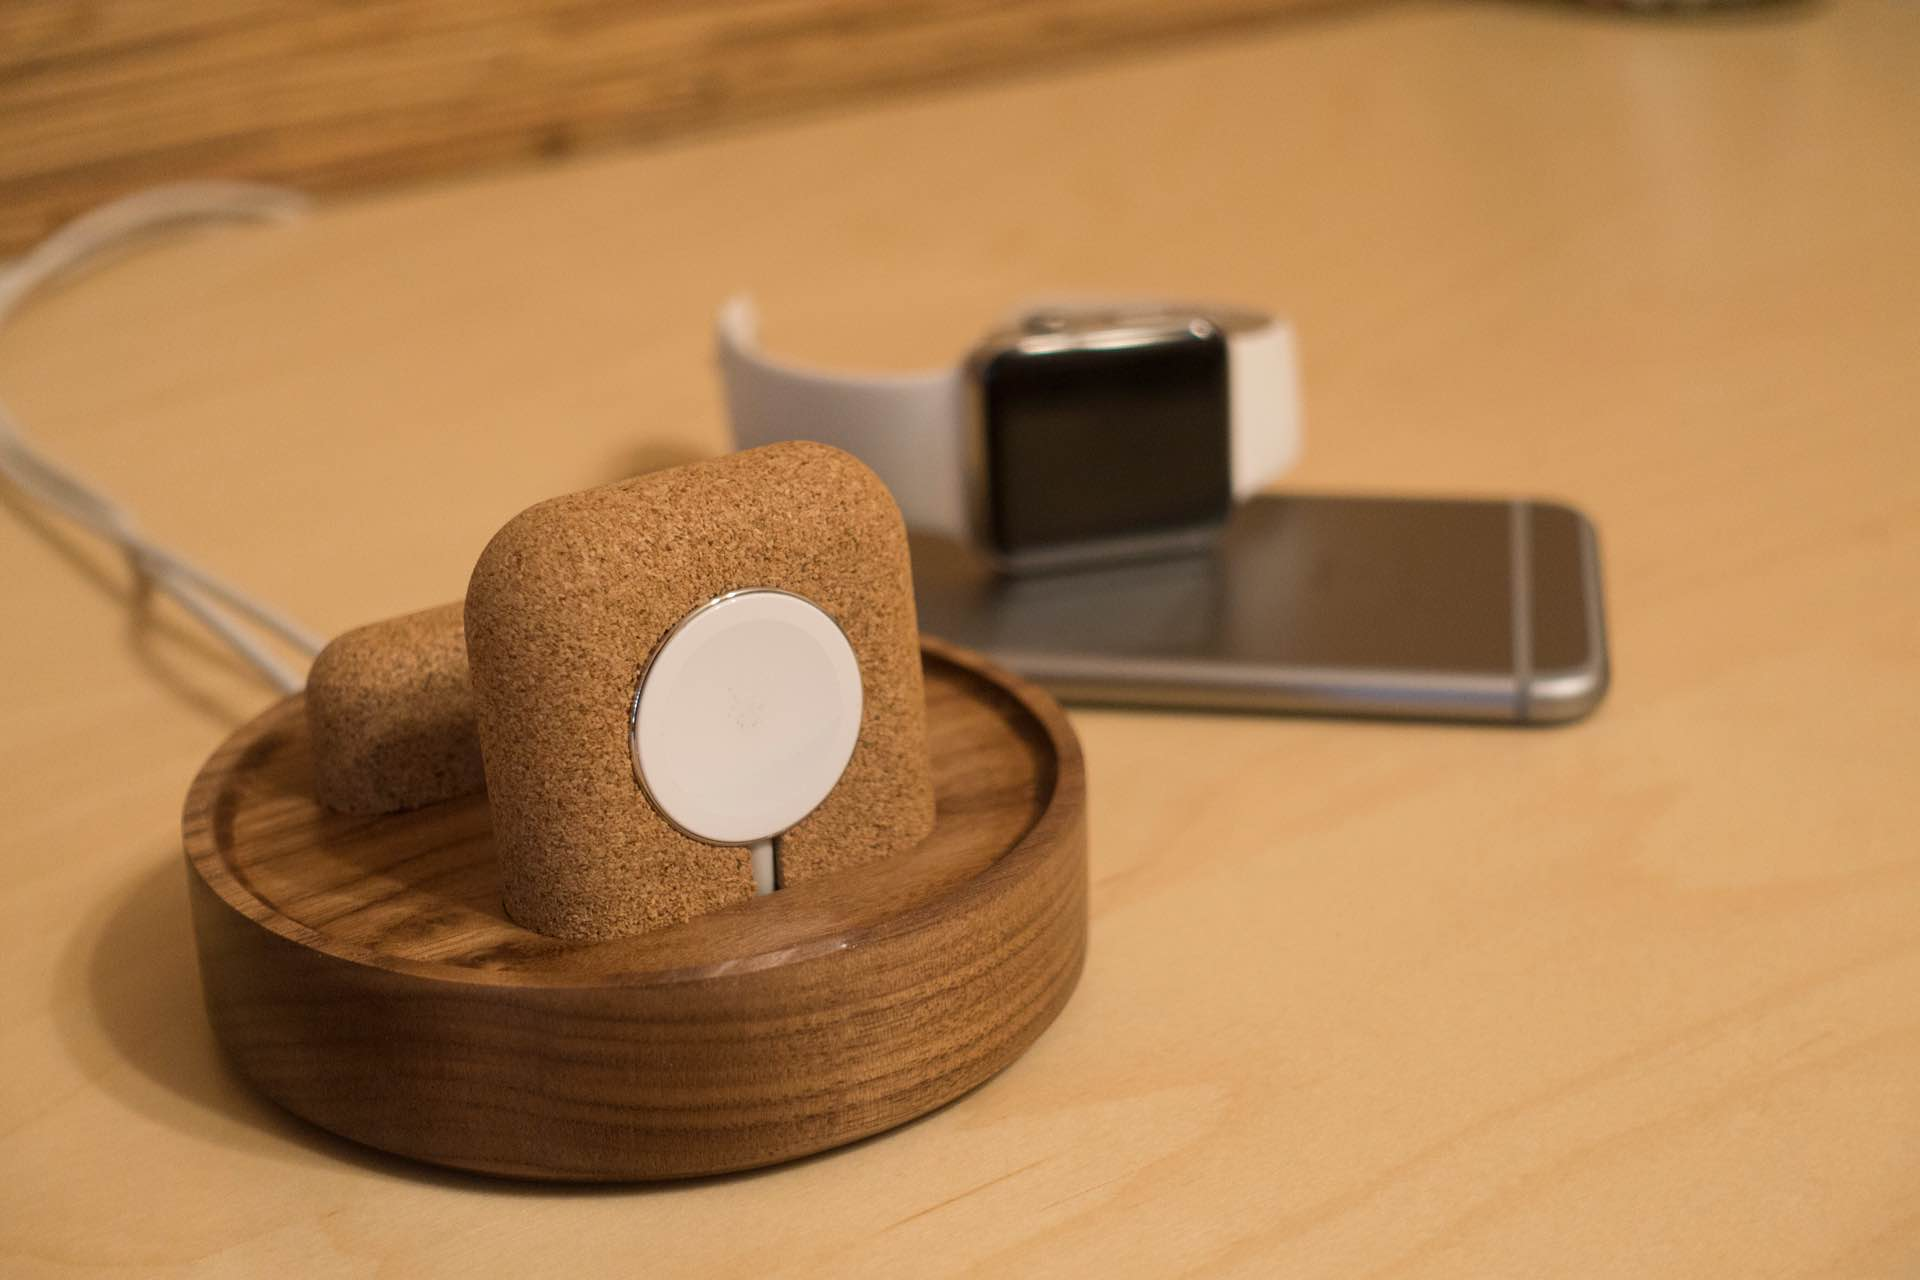 Studio Neat's Material Dock for iPhone and Apple Watch. ($45 or $70, depending on model)